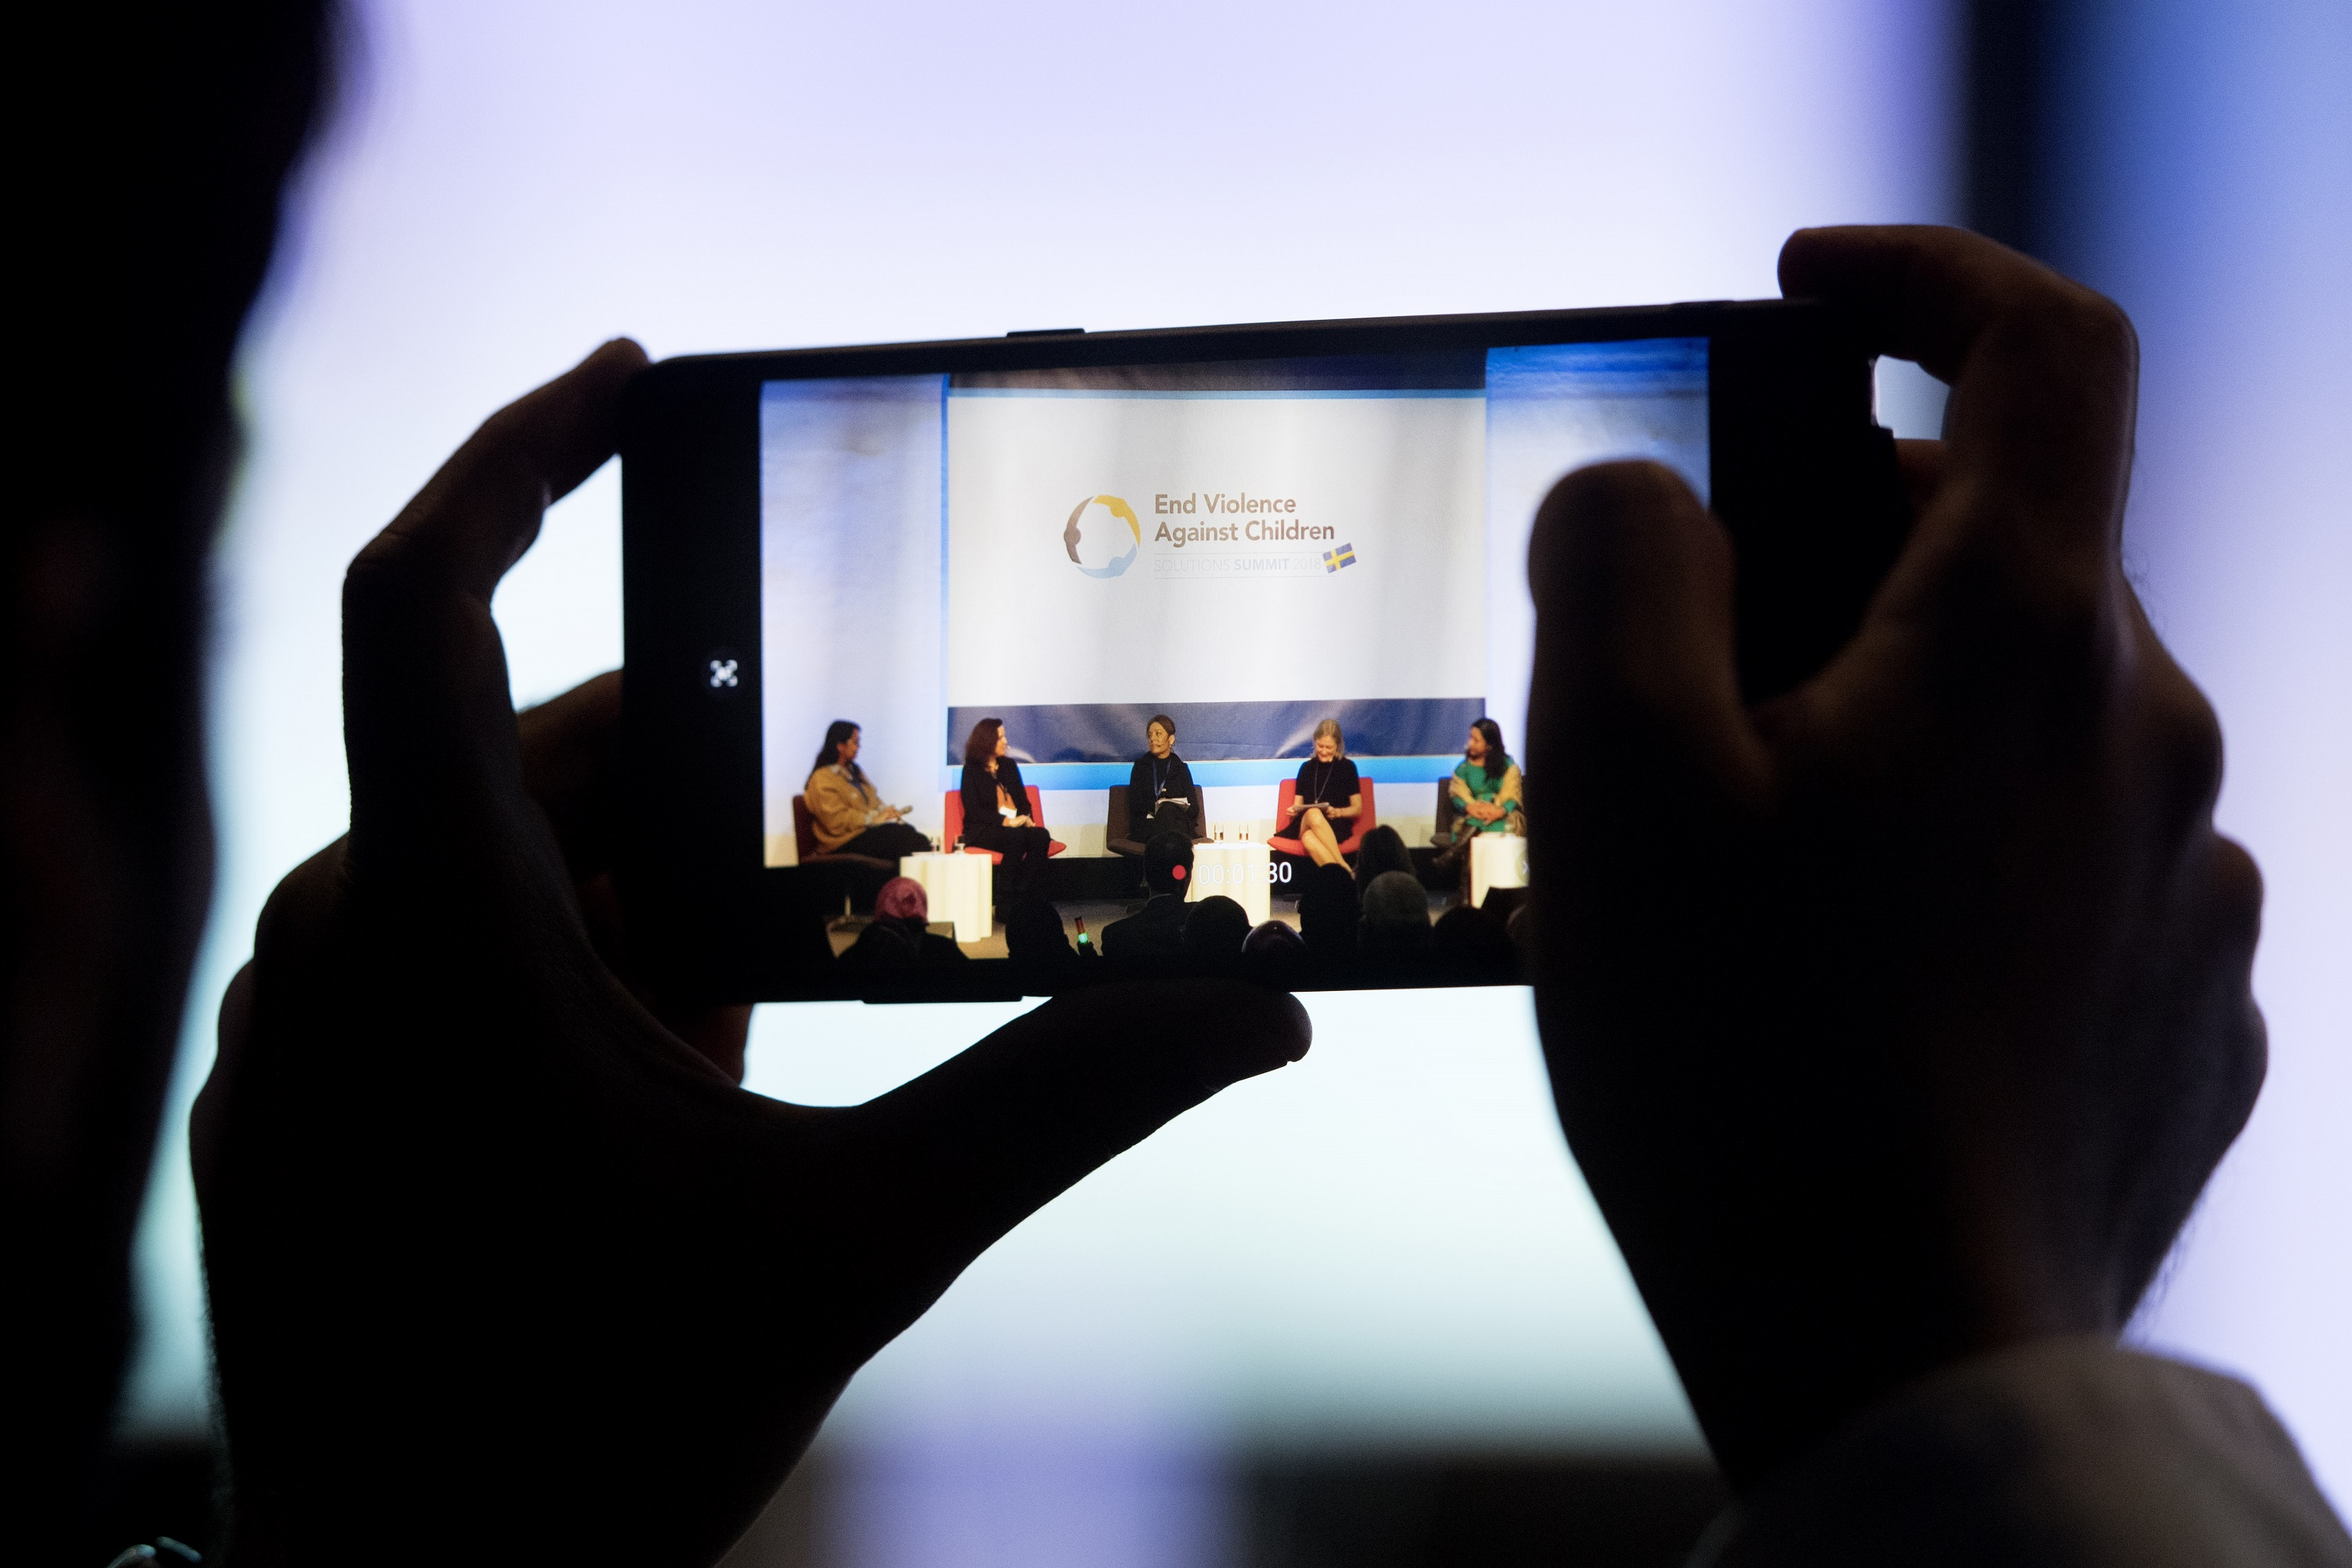 A panel of speakers sitting under a sign stating: End Violence Against Children, as seen through the view finder of a camera phone